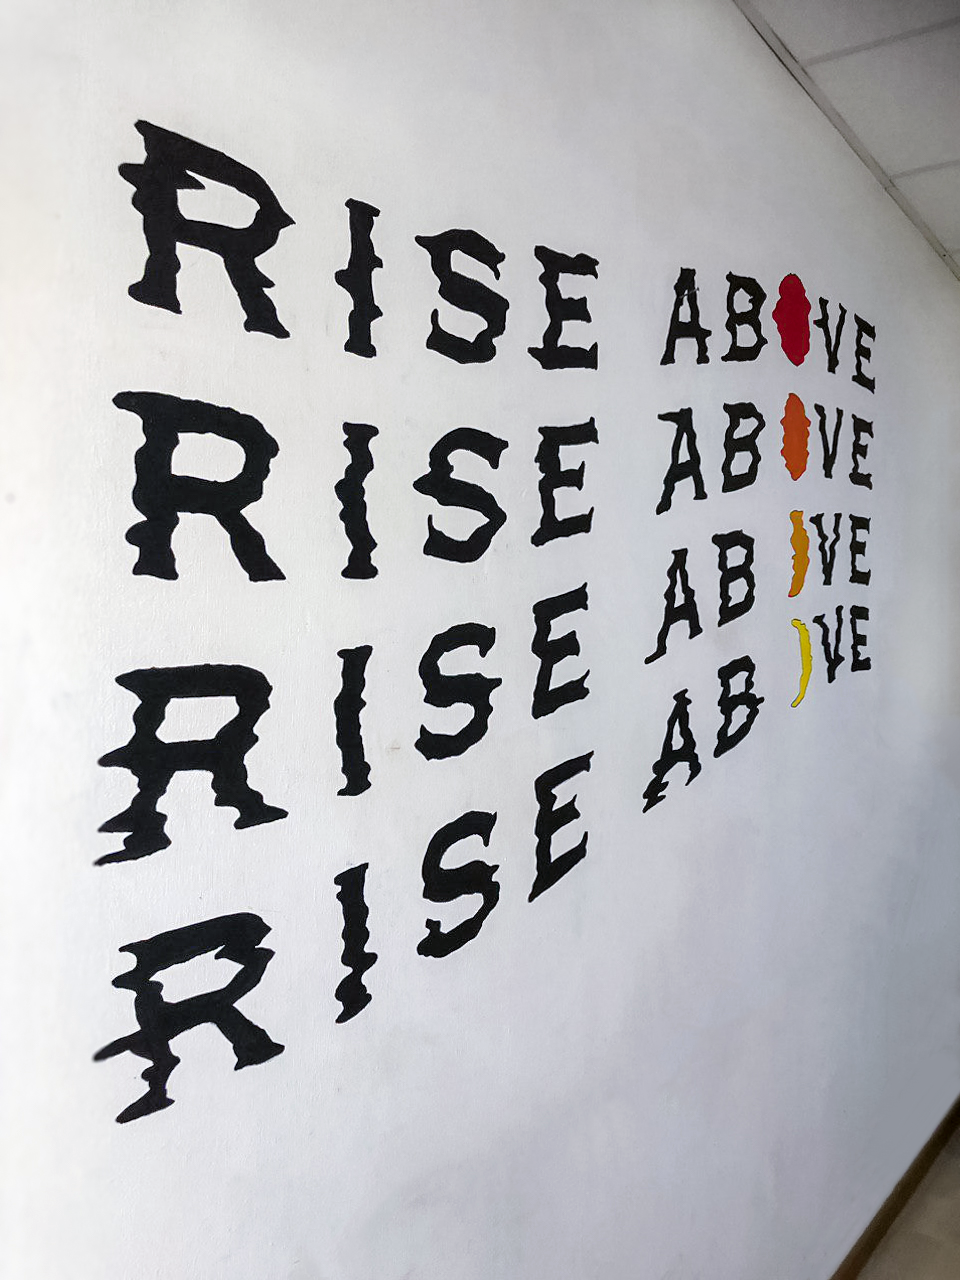 Residential Rise Above Glitch Wavy Moon Sun Typographic Lettering Wall Mural Singapore.jpg